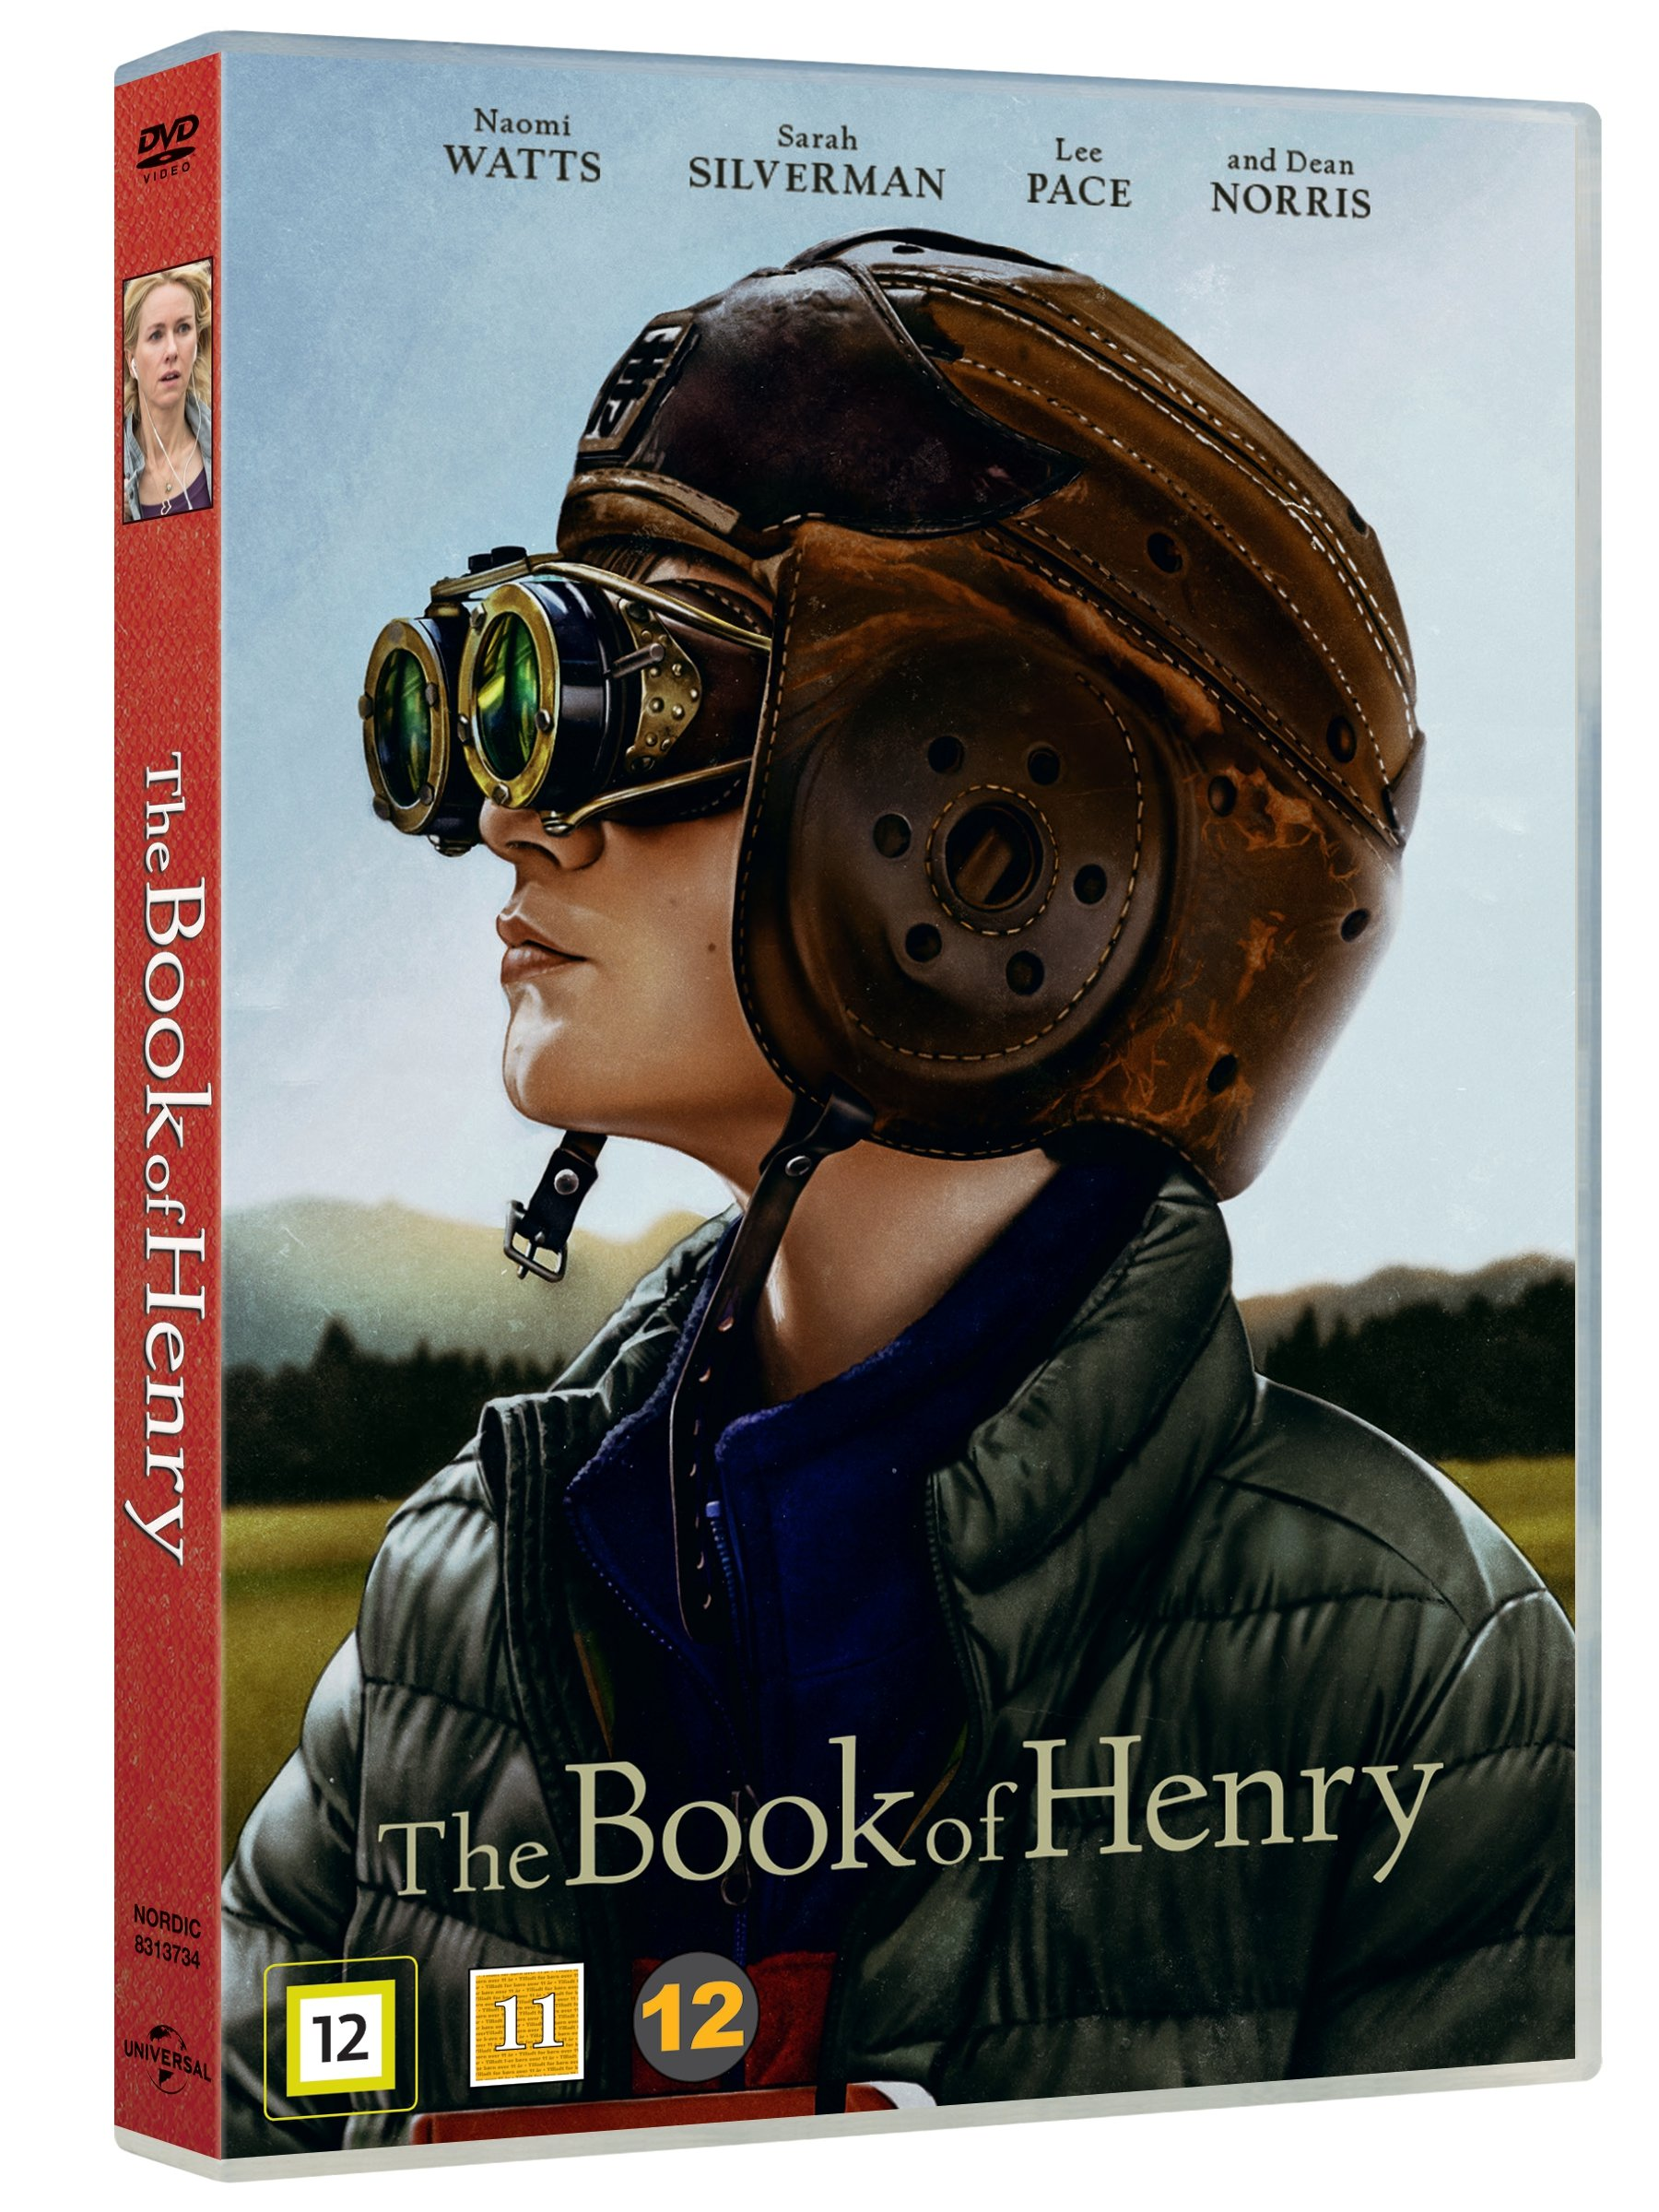 Book of Henry, The - DVD